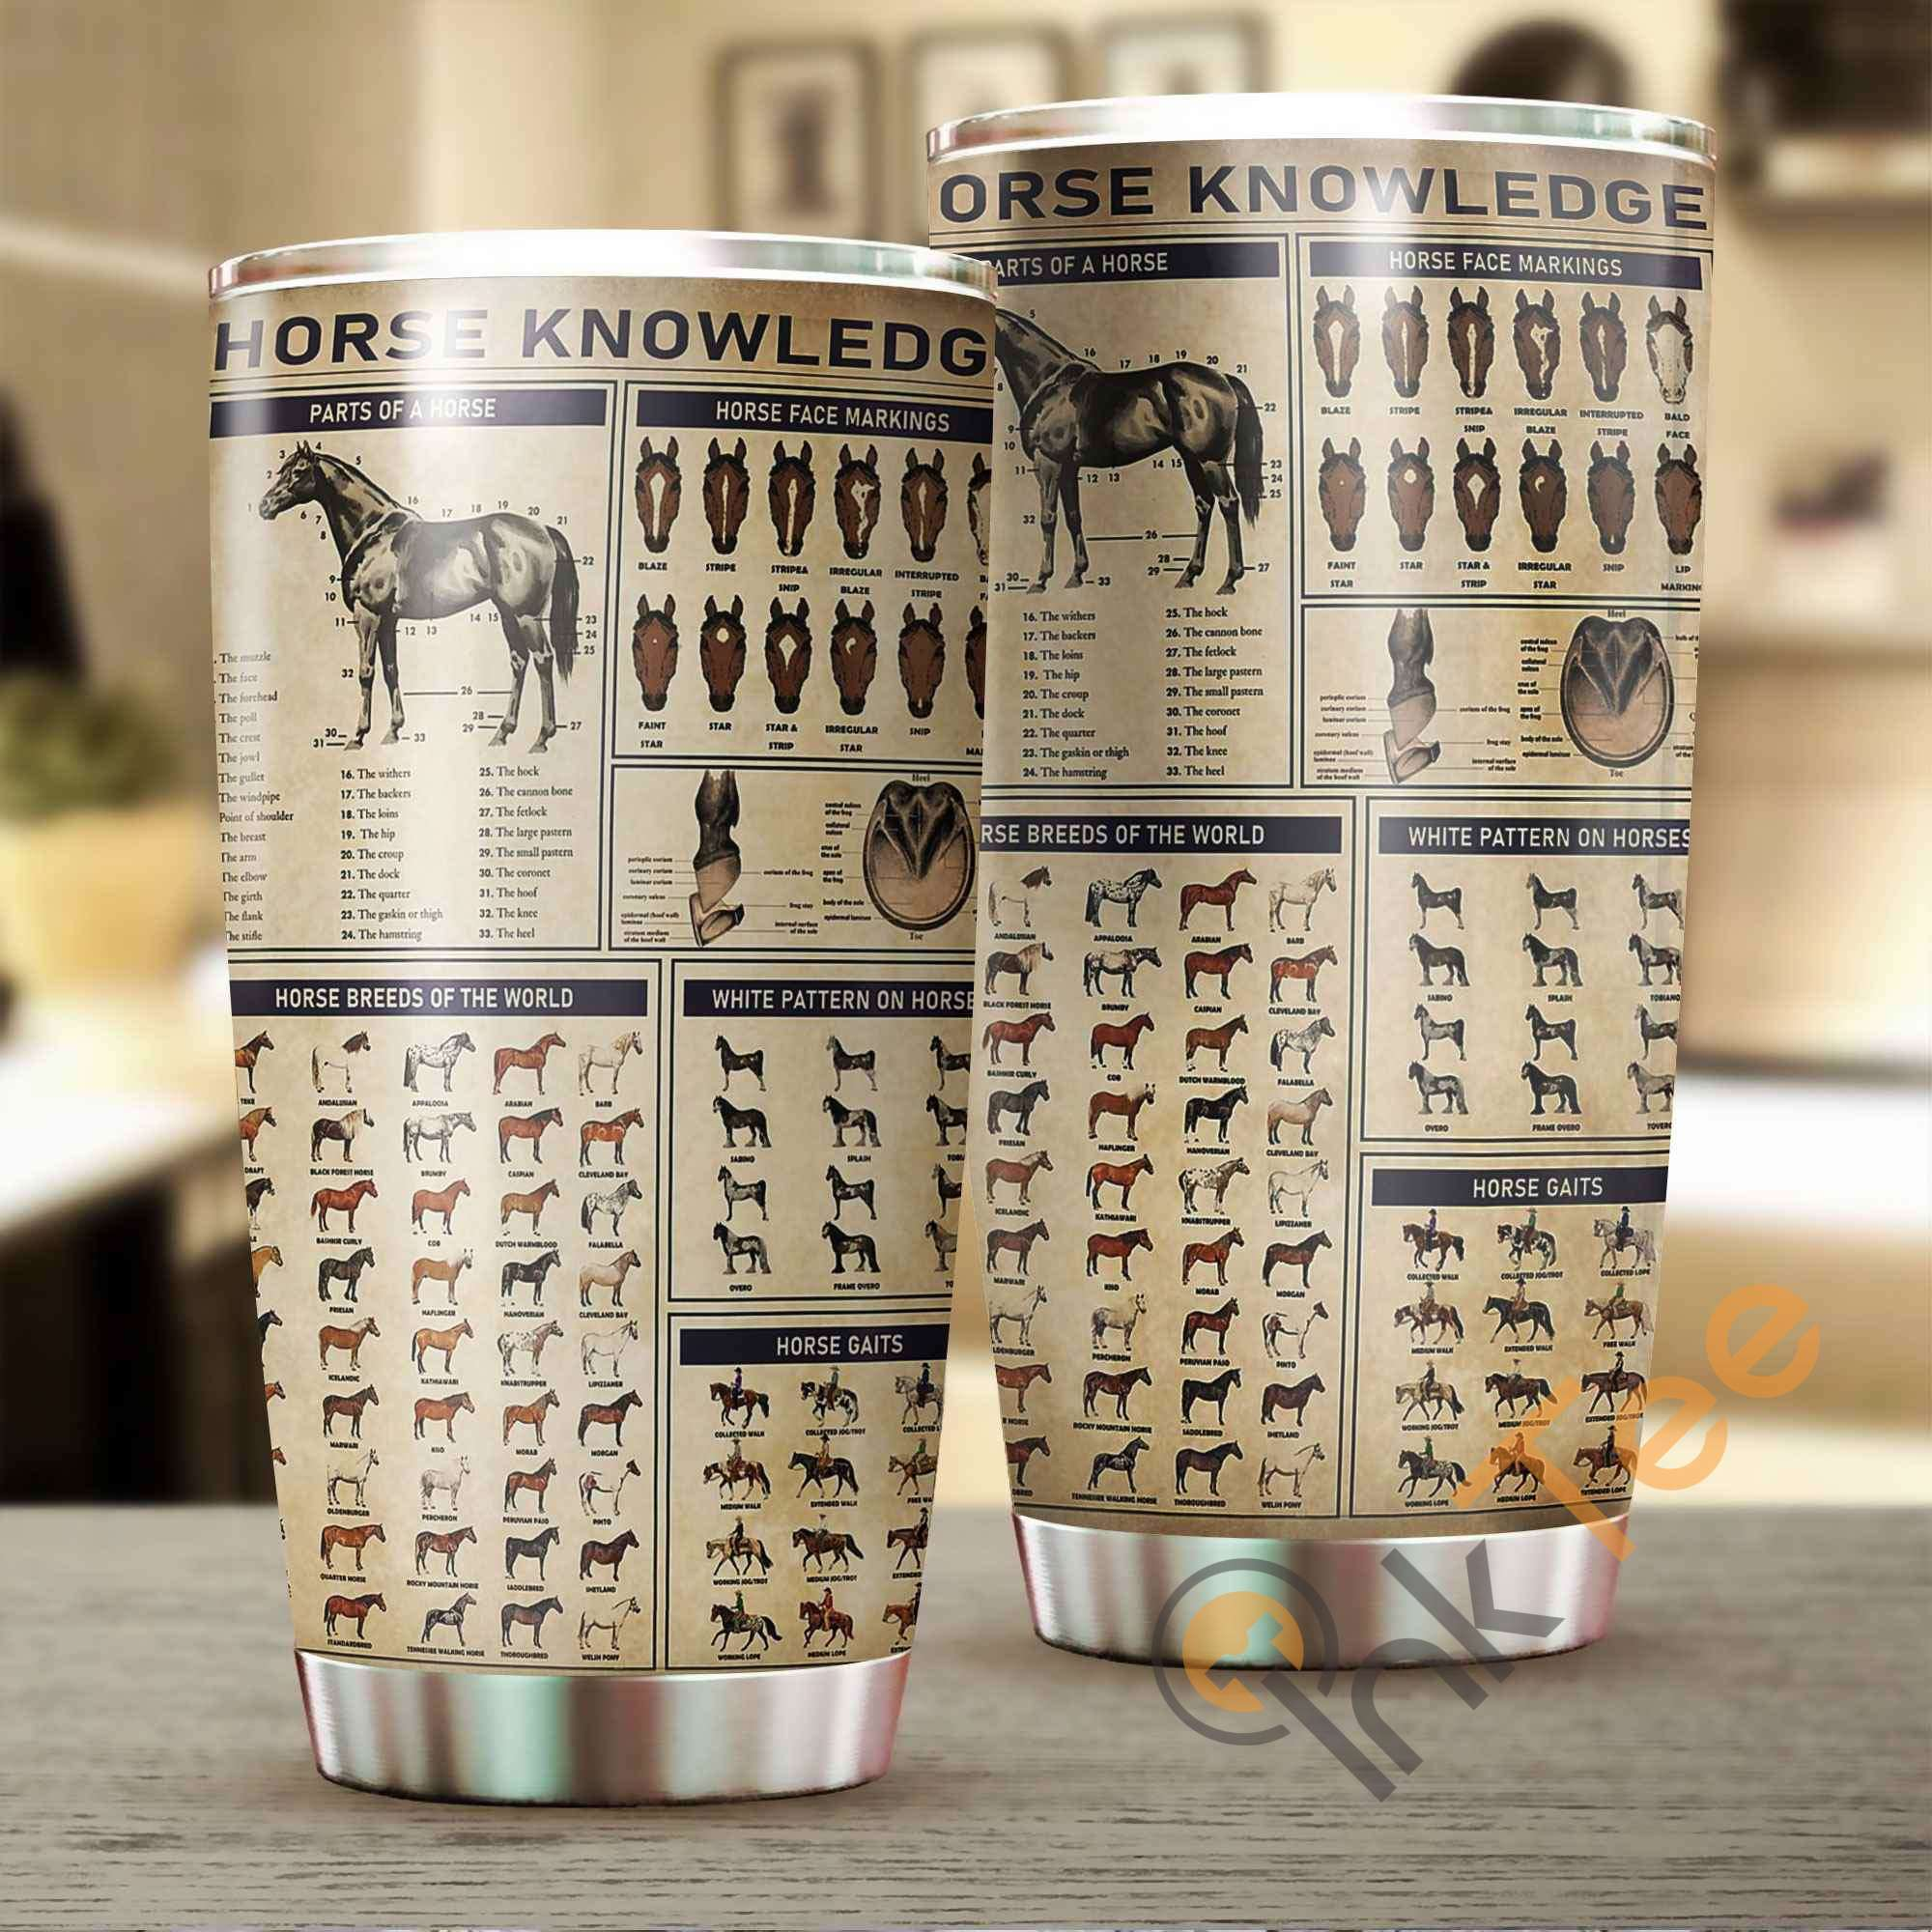 Horse Knowledge Amazon Best Seller Sku 3050 Stainless Steel Tumbler